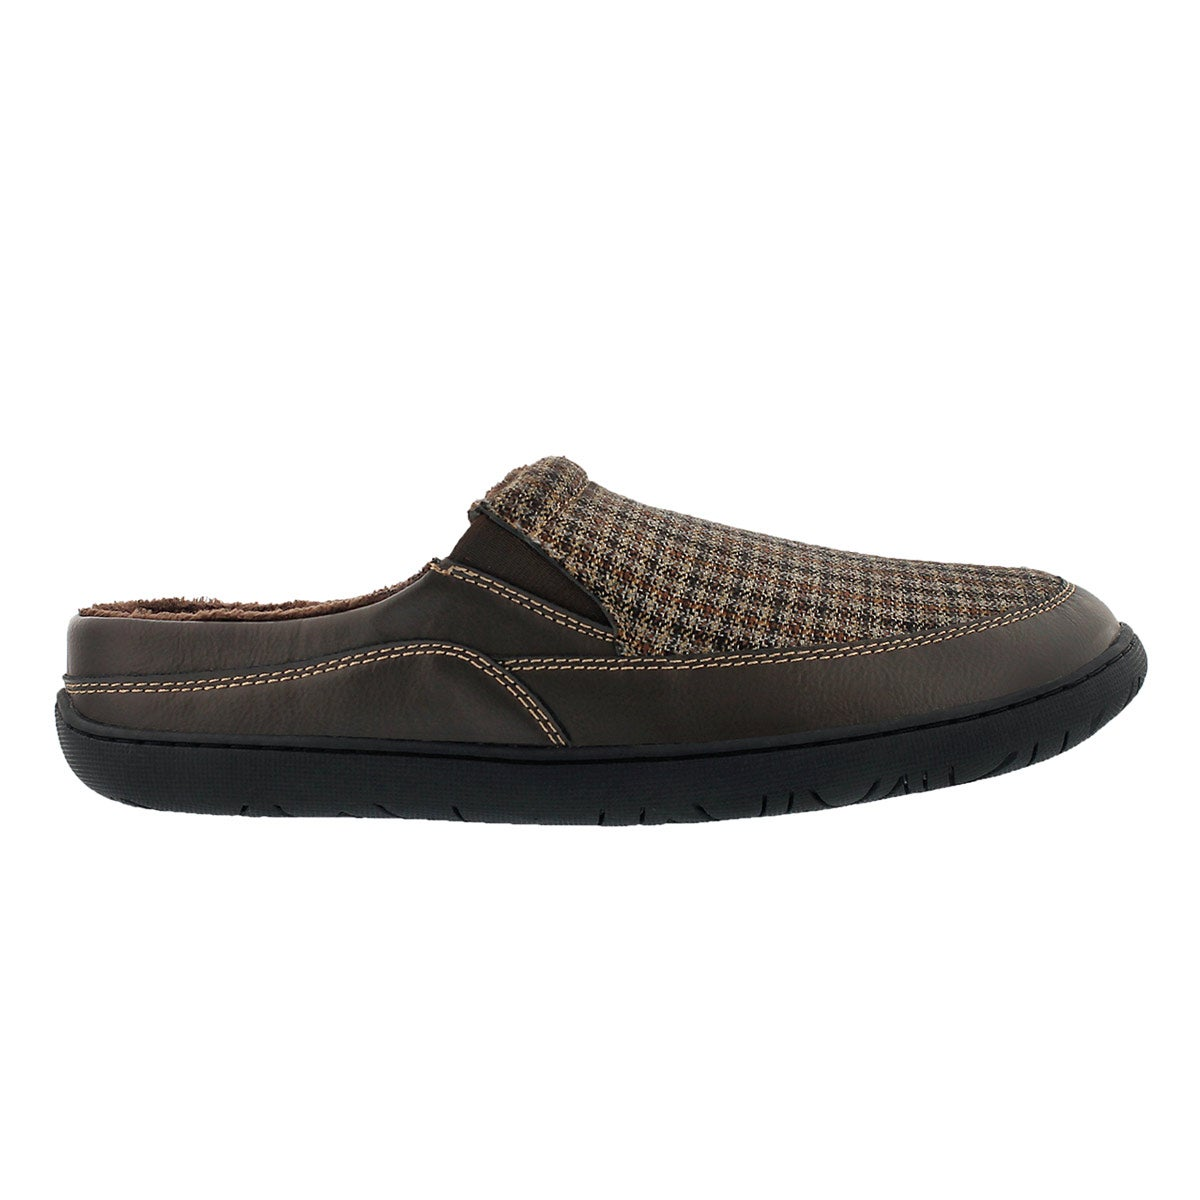 Mns Sheldon brown pld open back slipper